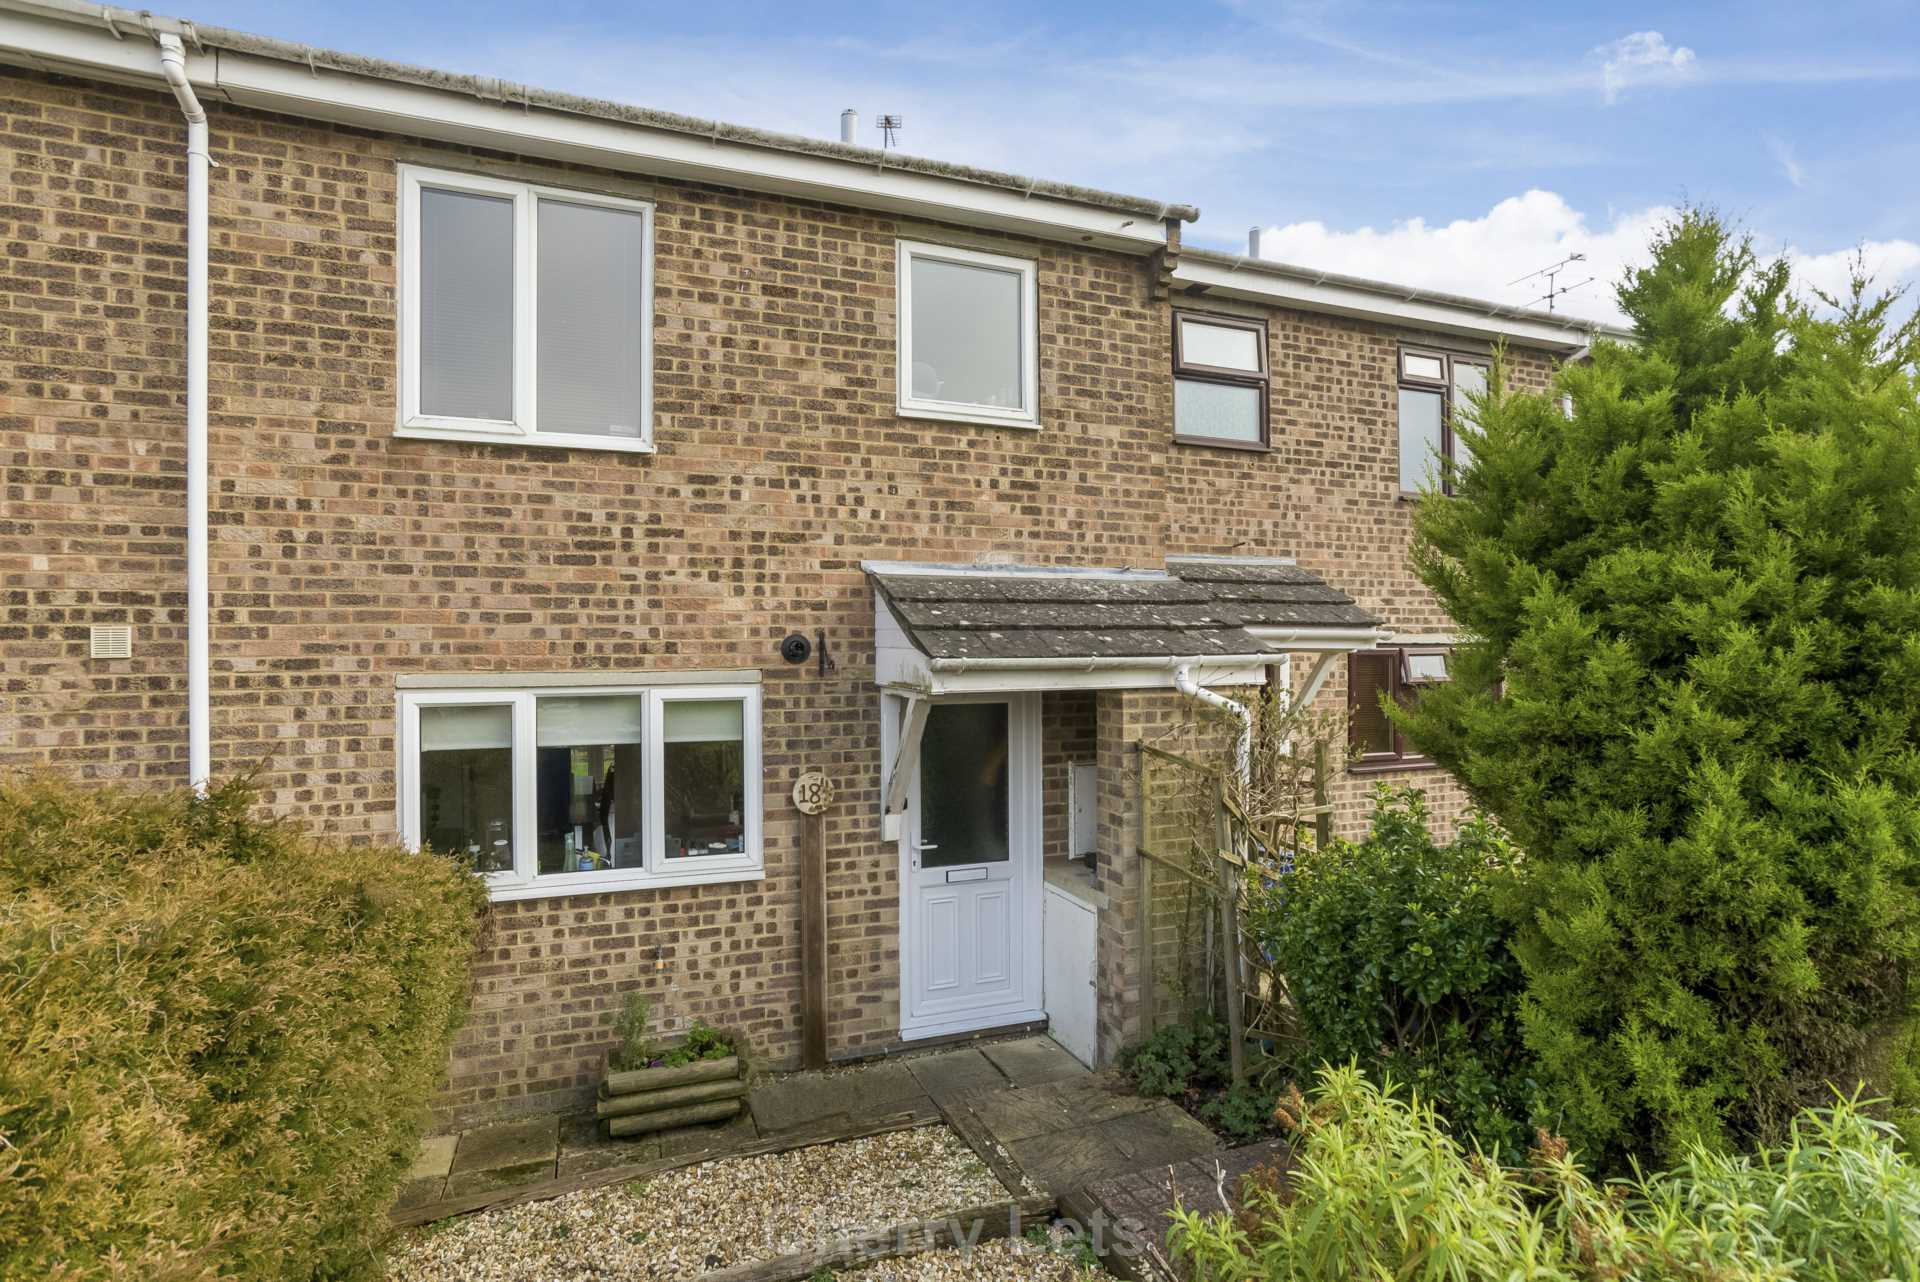 3 bed terraced house to rent in Crouch Hill Road, Banbury, OX16